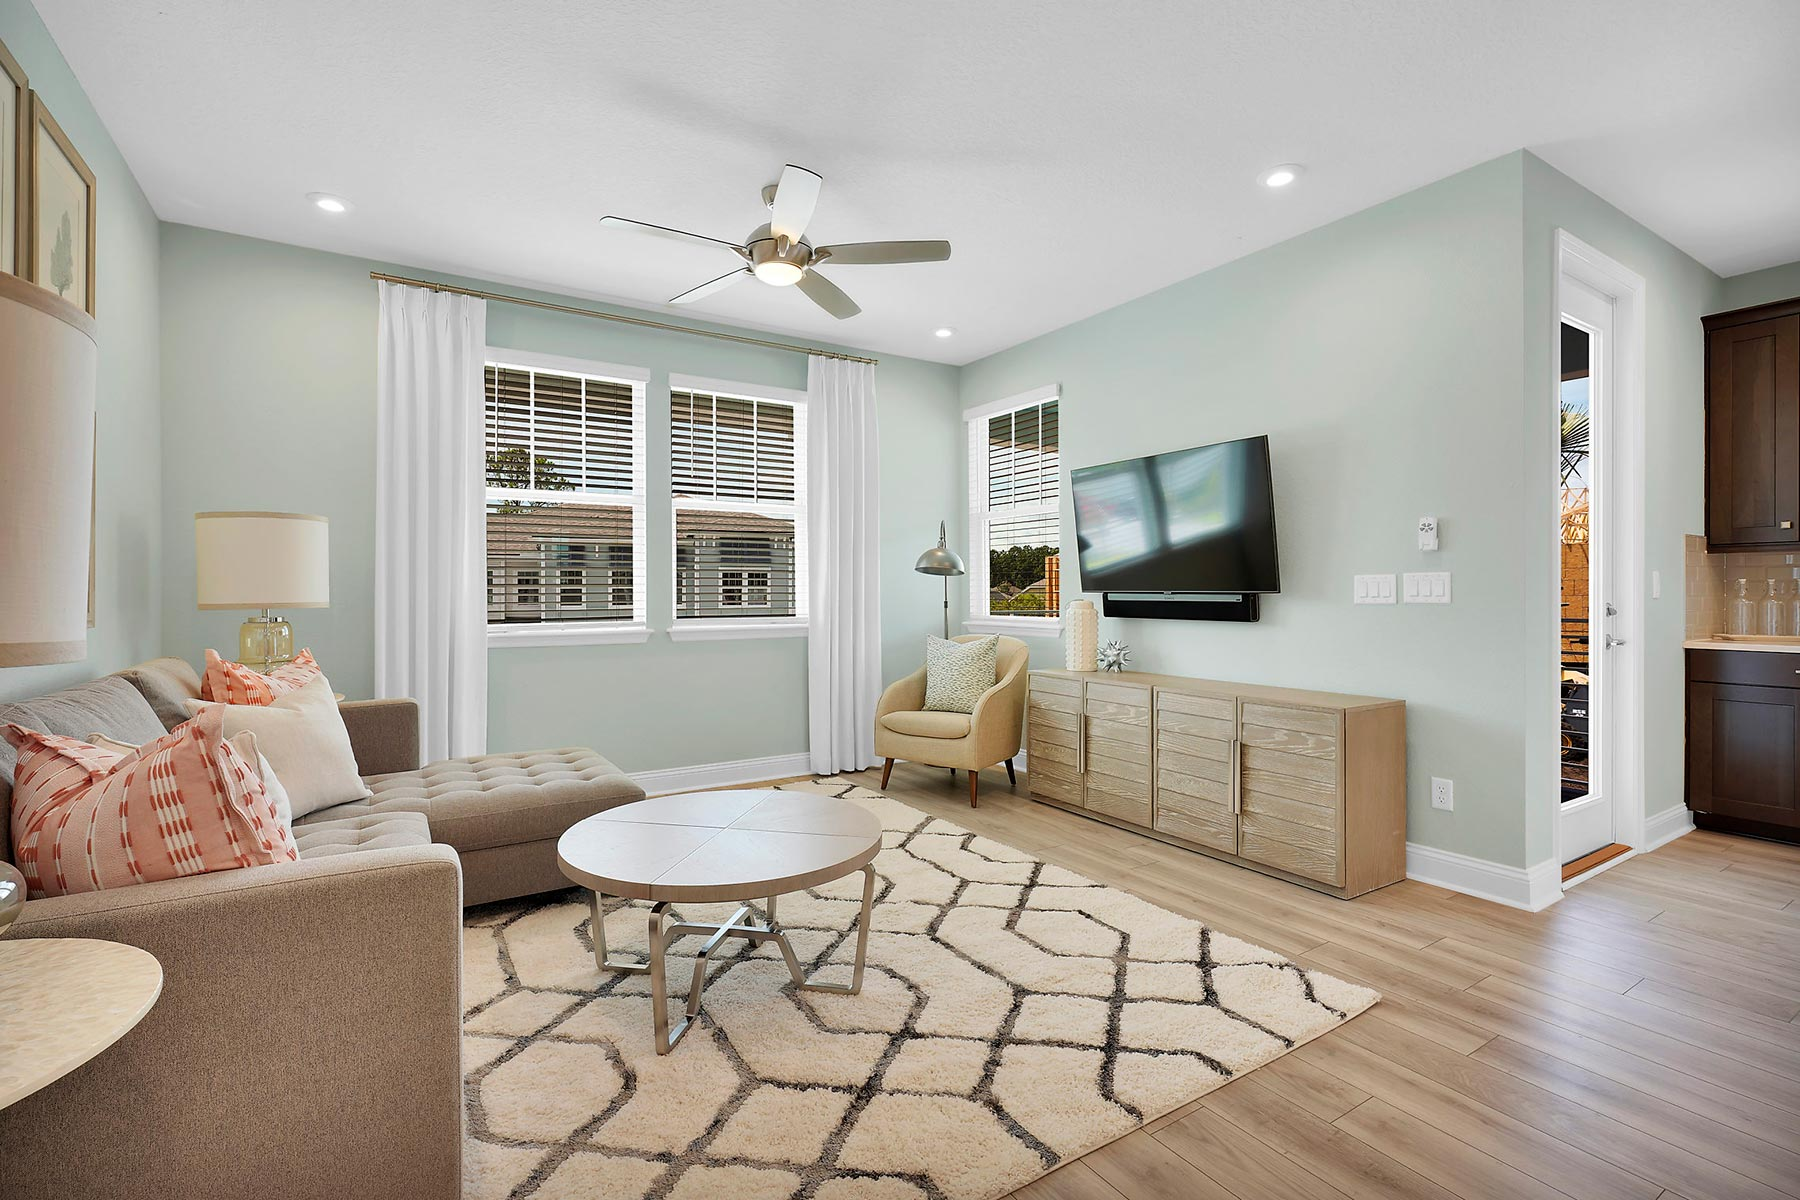 Kai Plan Greatroom at Pablo Cove in Jacksonville Florida by Mattamy Homes